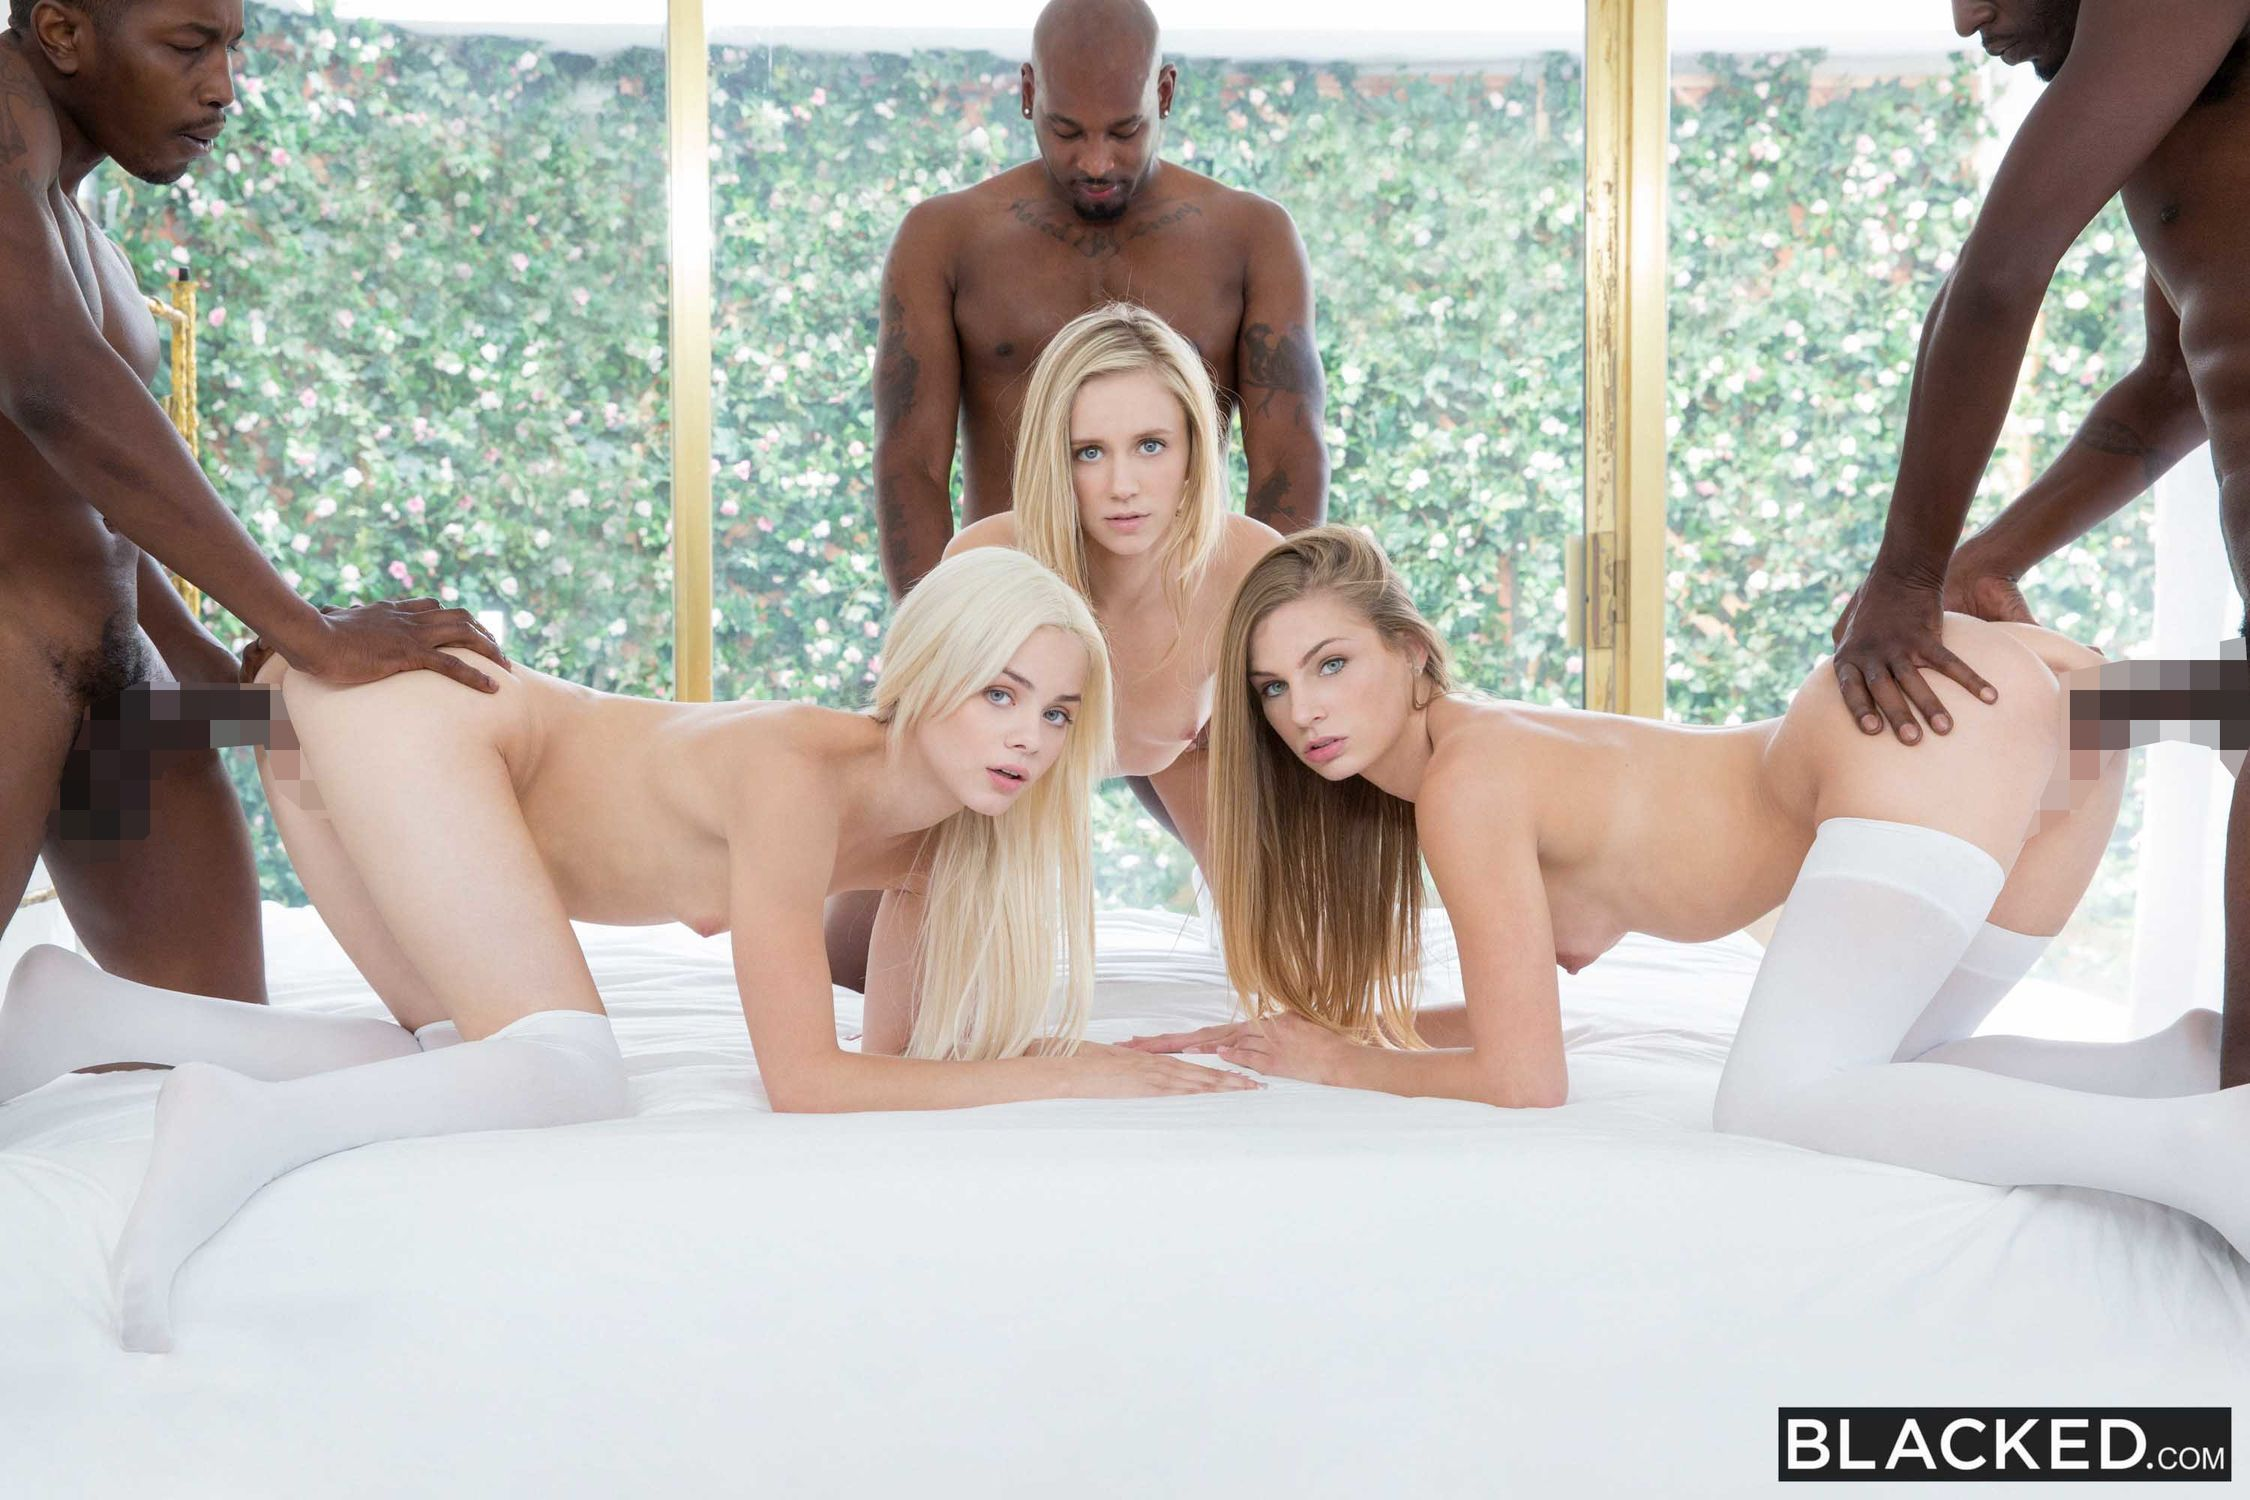 BLACKED - Sydney Cole, Elsa Jean, Rachel James 02